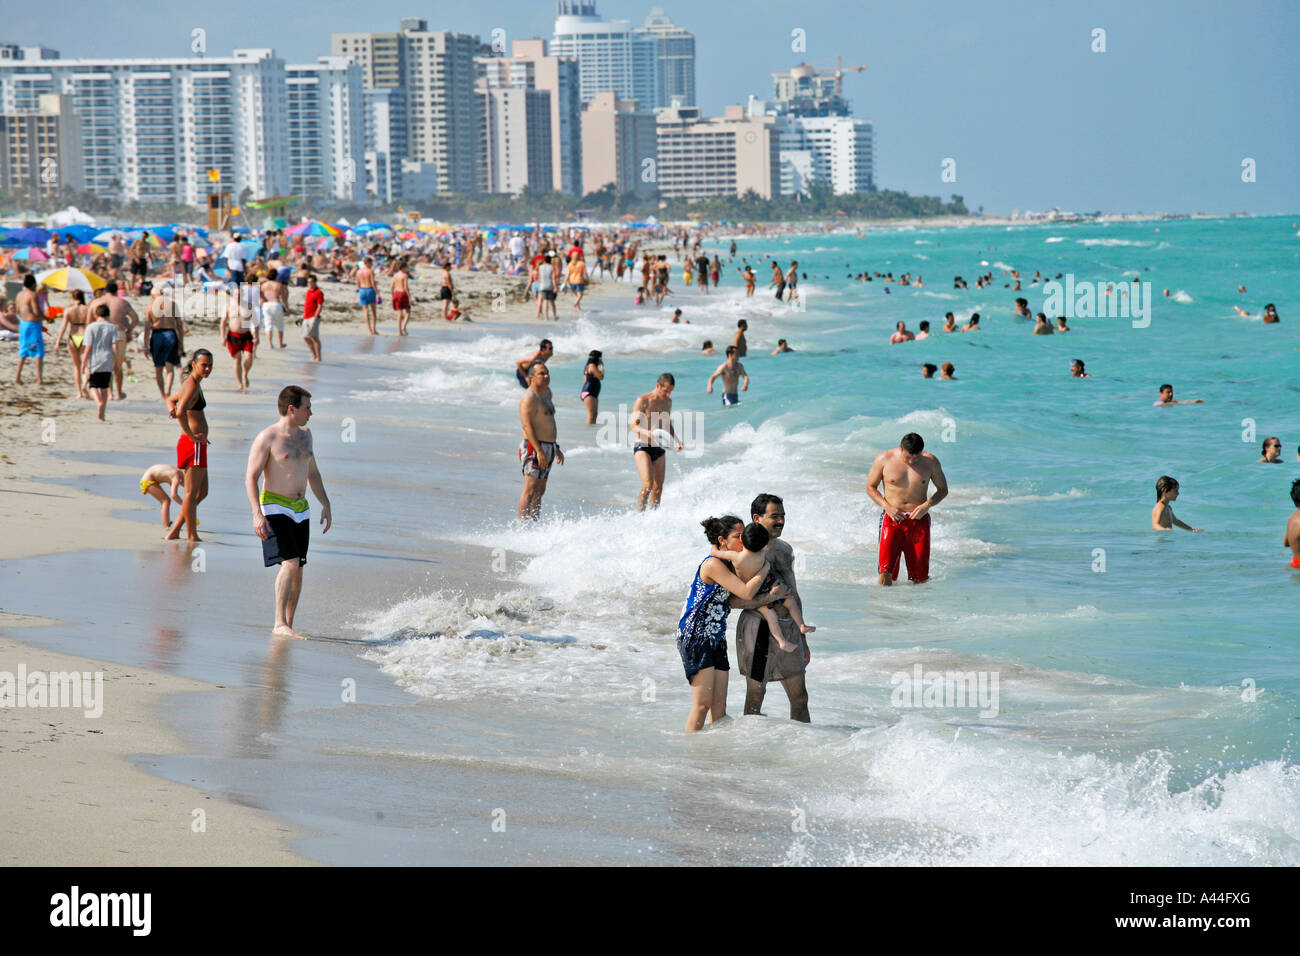 USA FLORIDA People At The Beach Of MIAMI SOUTH BEACH